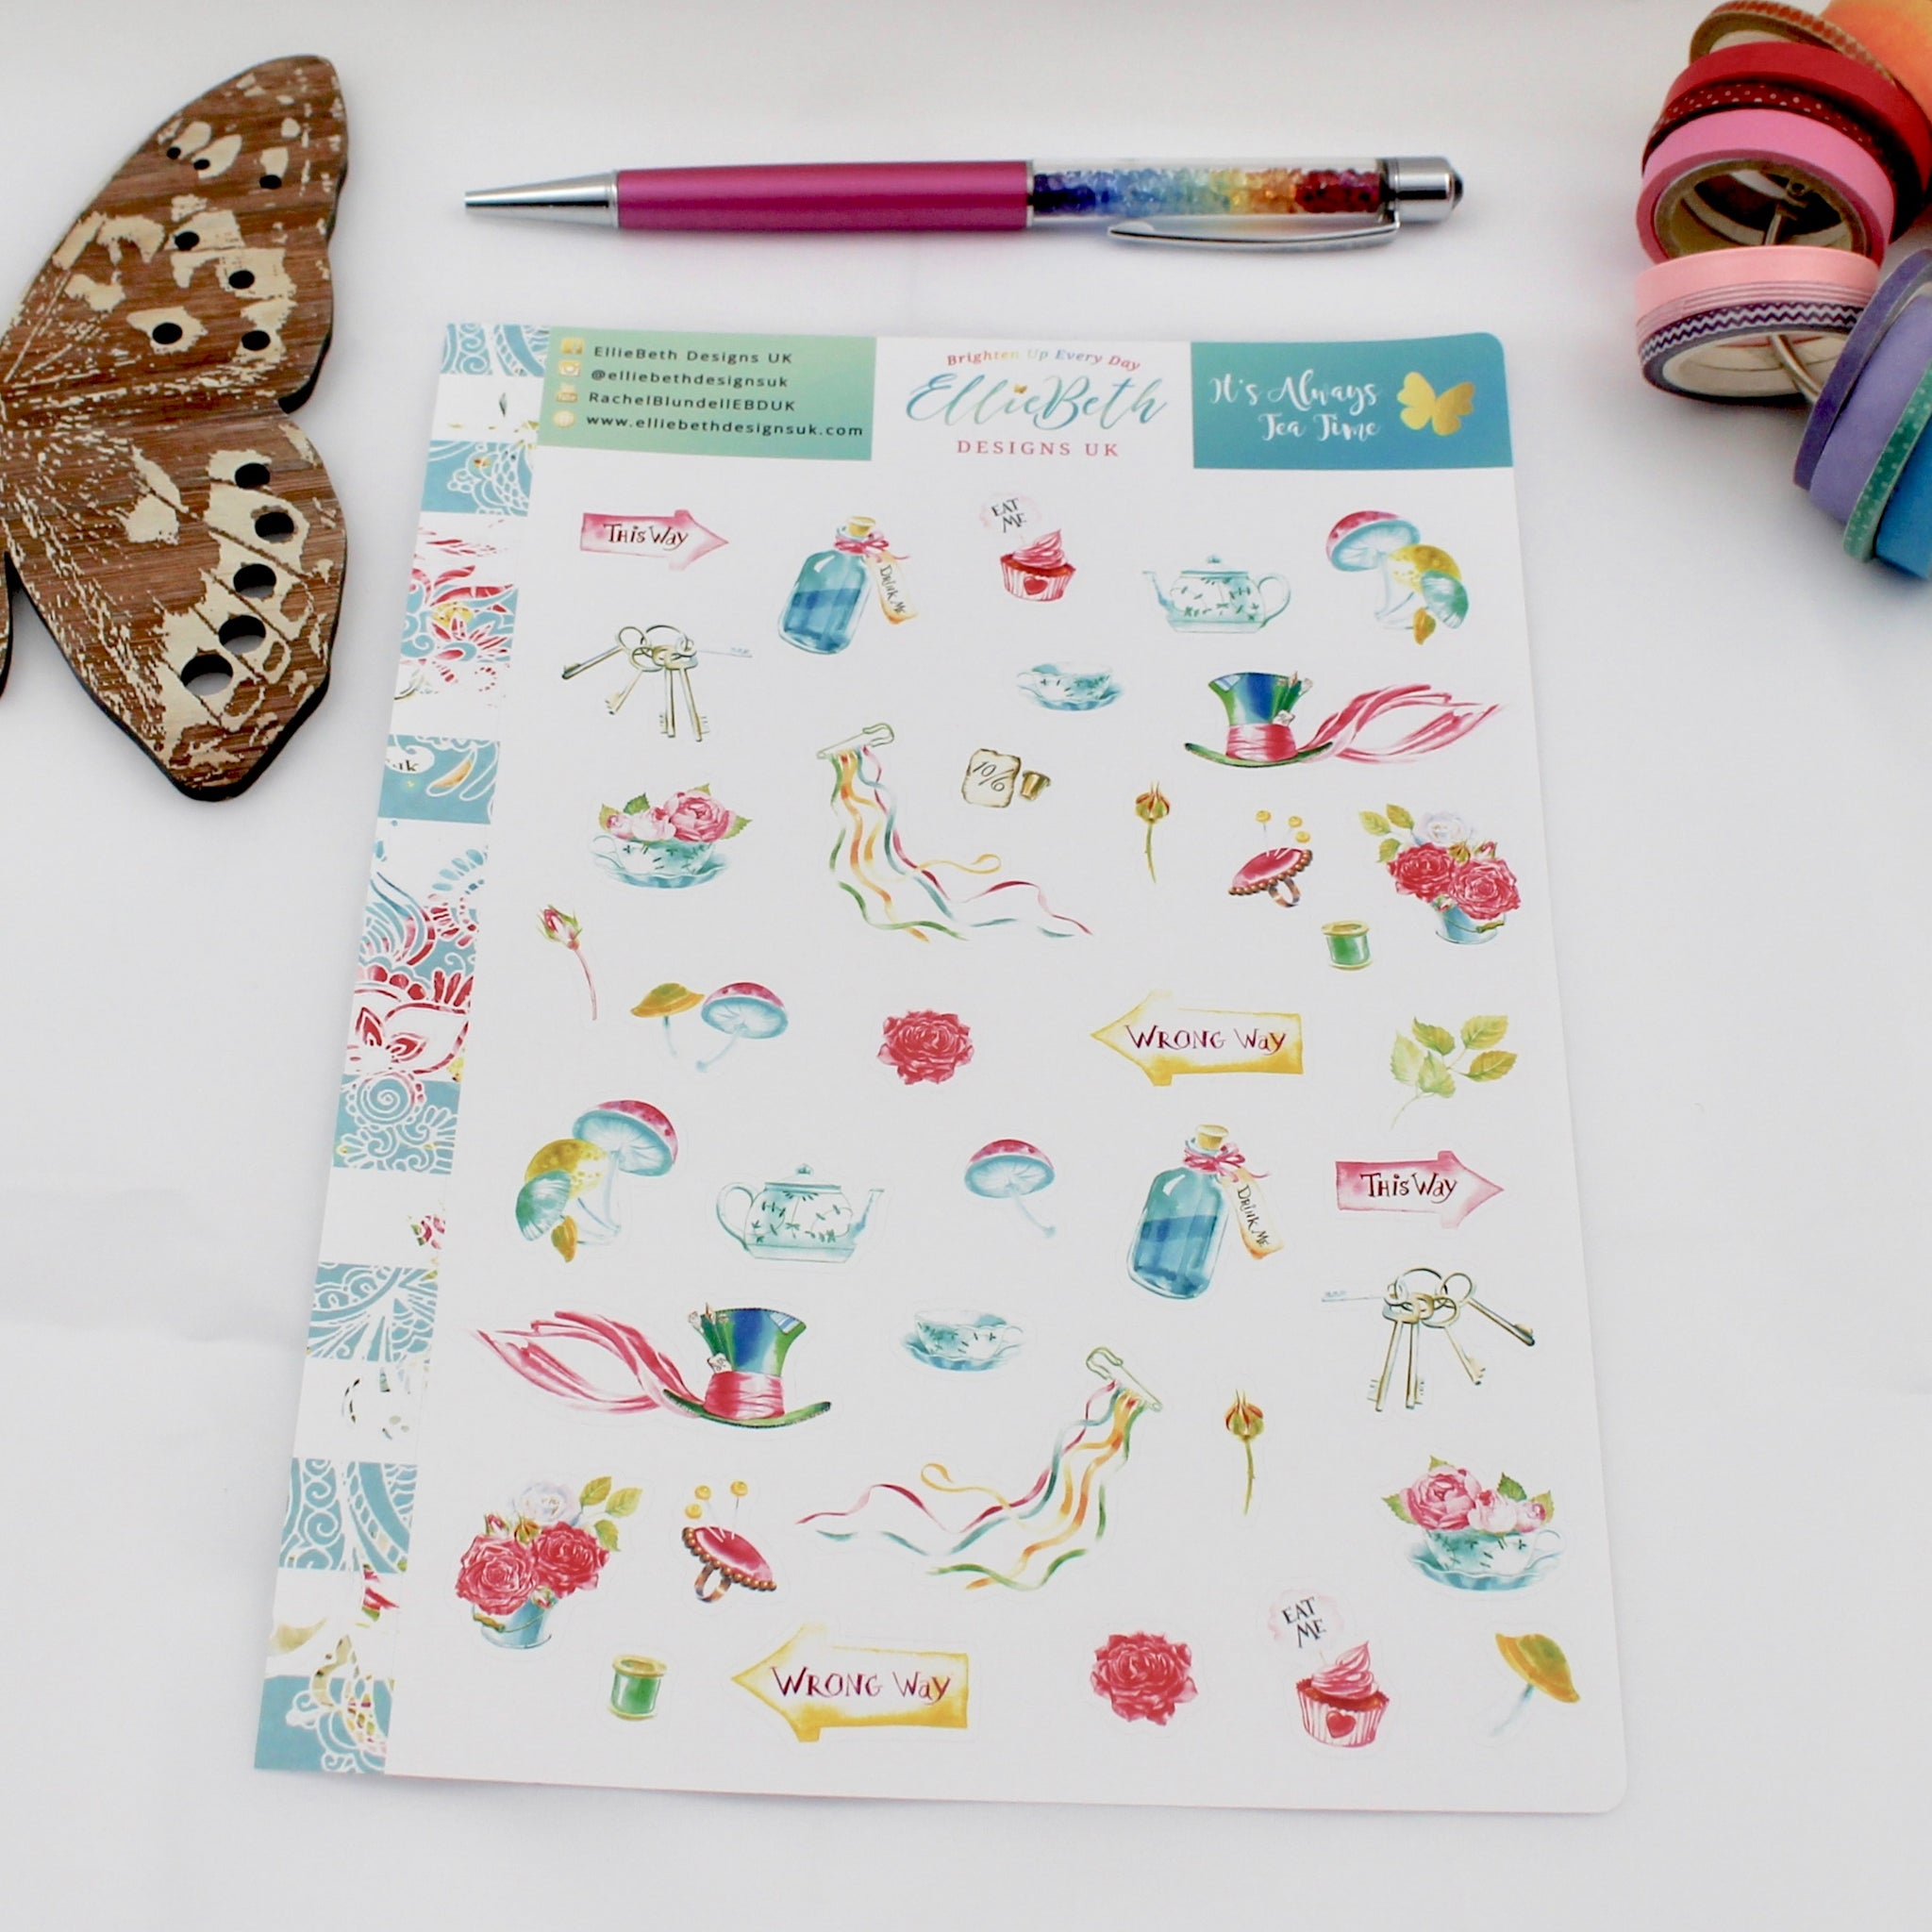 'It's Always Tea Time'  - Decorative Sheet -  A5 binder ready planner stickers - EllieBeth Designs UK